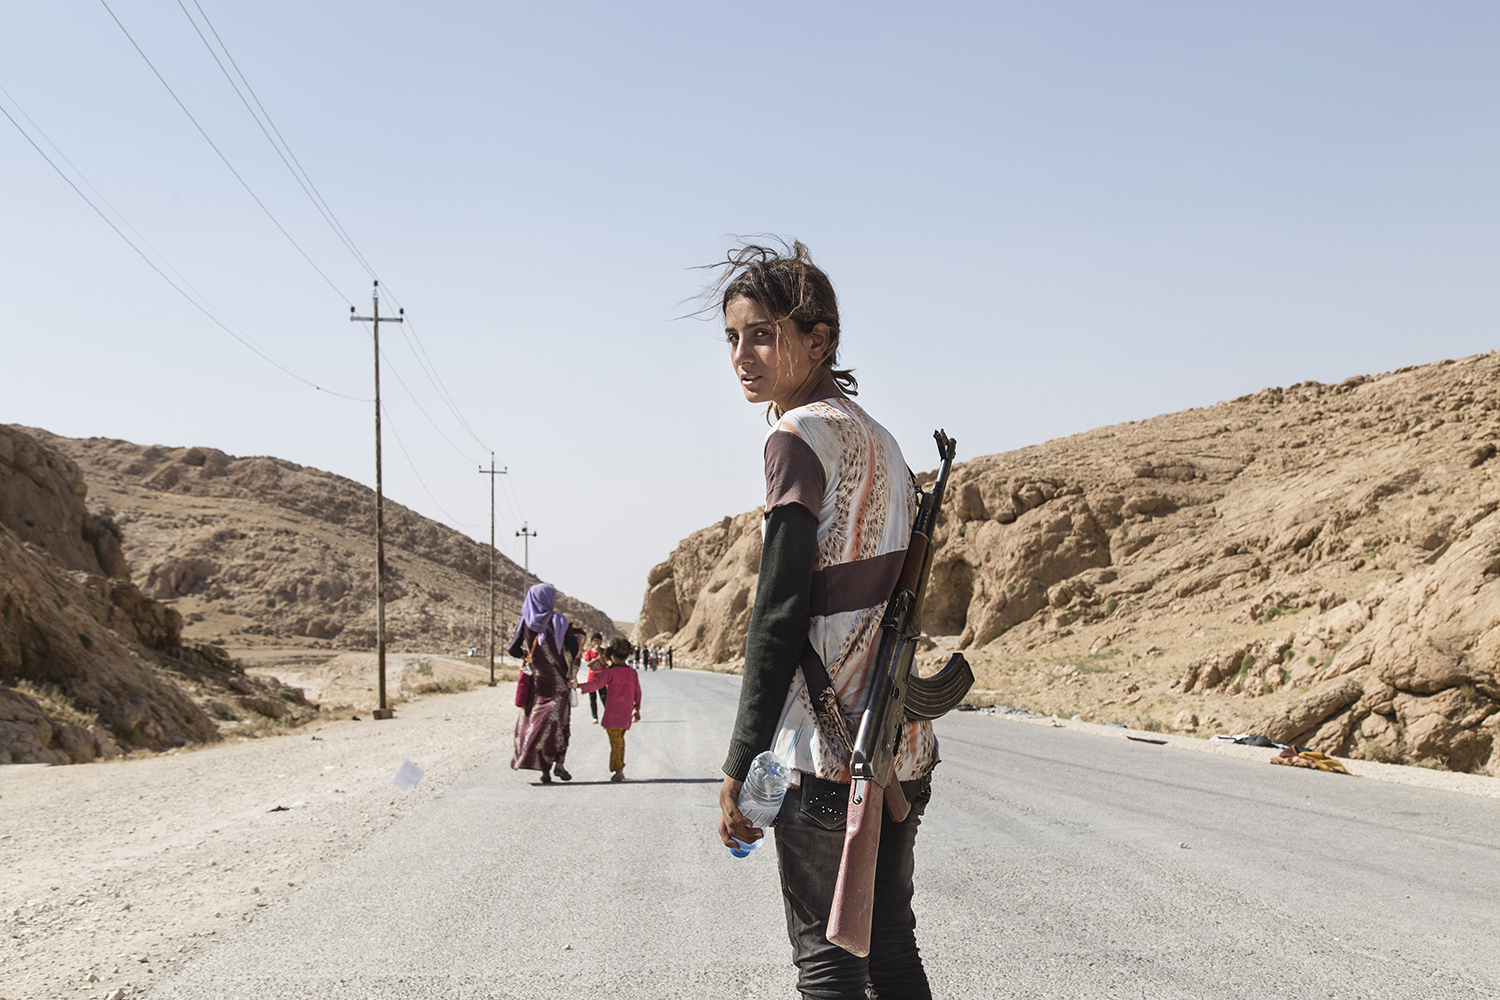 Runak,14, from Shengal, makes her way down the mountain after a week. August 2014. Sinjar Mountains, Iraq.